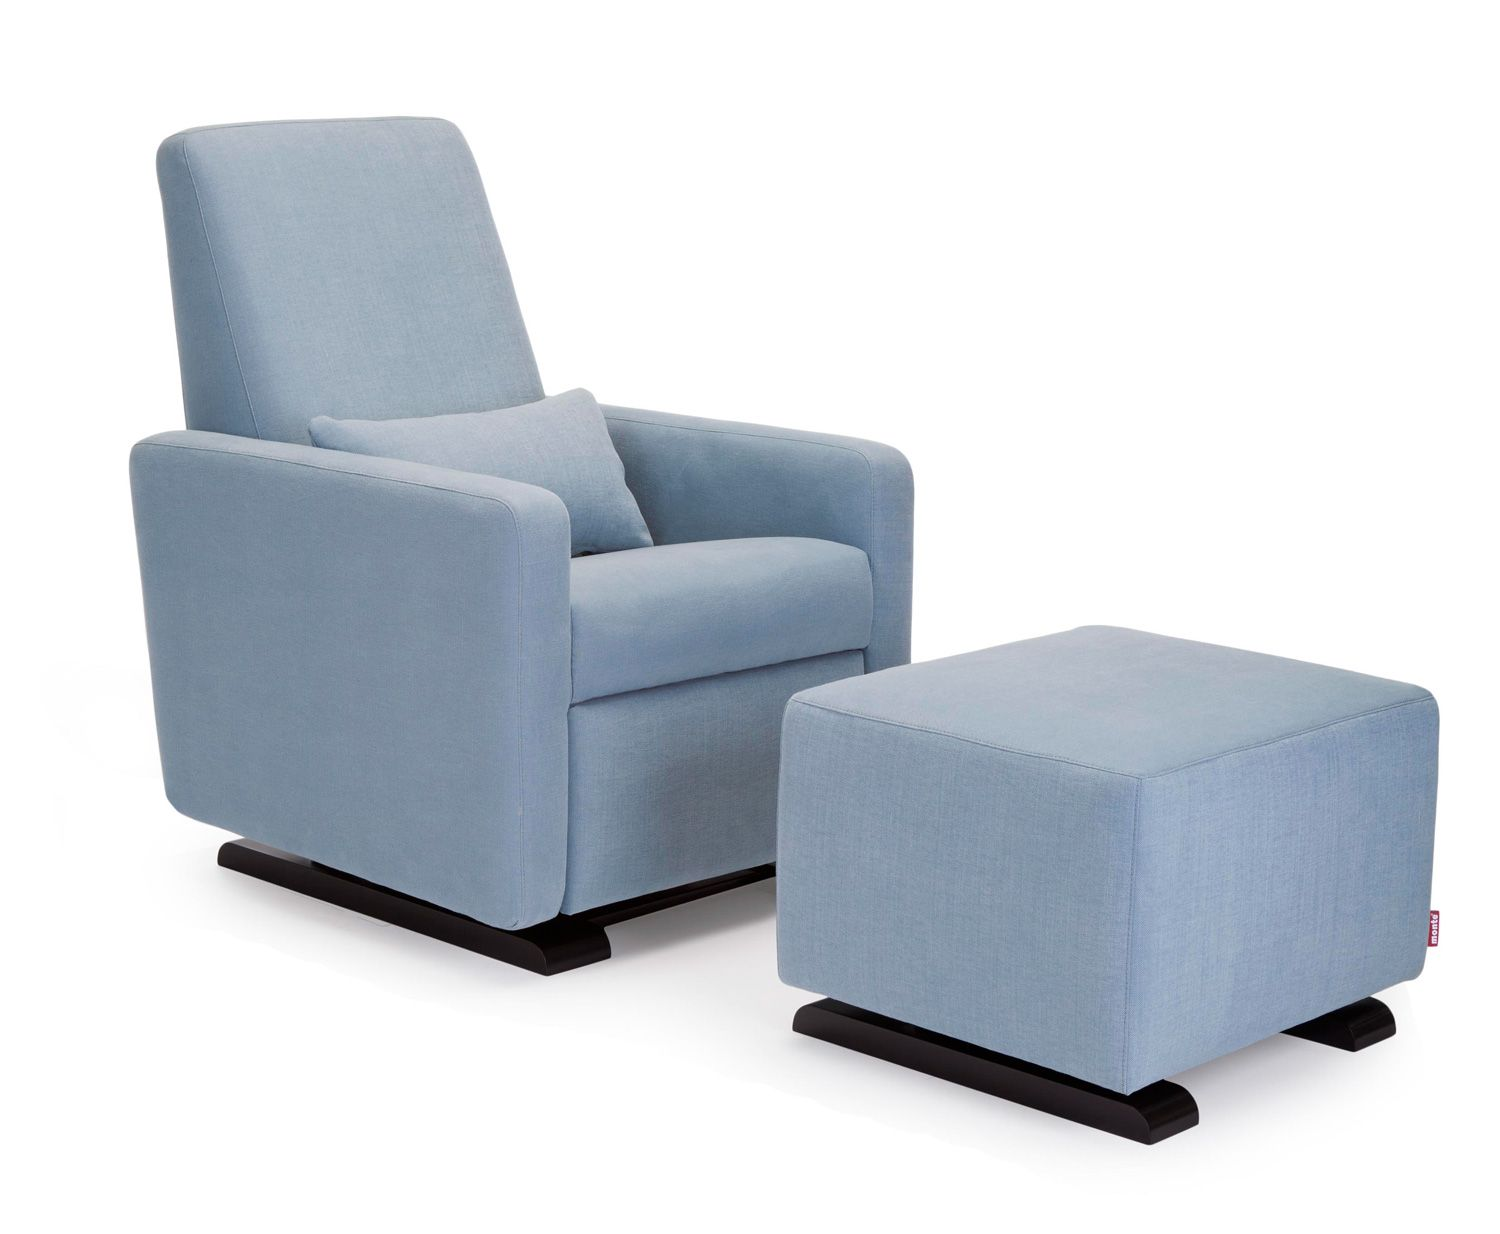 Awe Inspiring Grano Glider Recliner For The Home Glider Recliner Ibusinesslaw Wood Chair Design Ideas Ibusinesslaworg